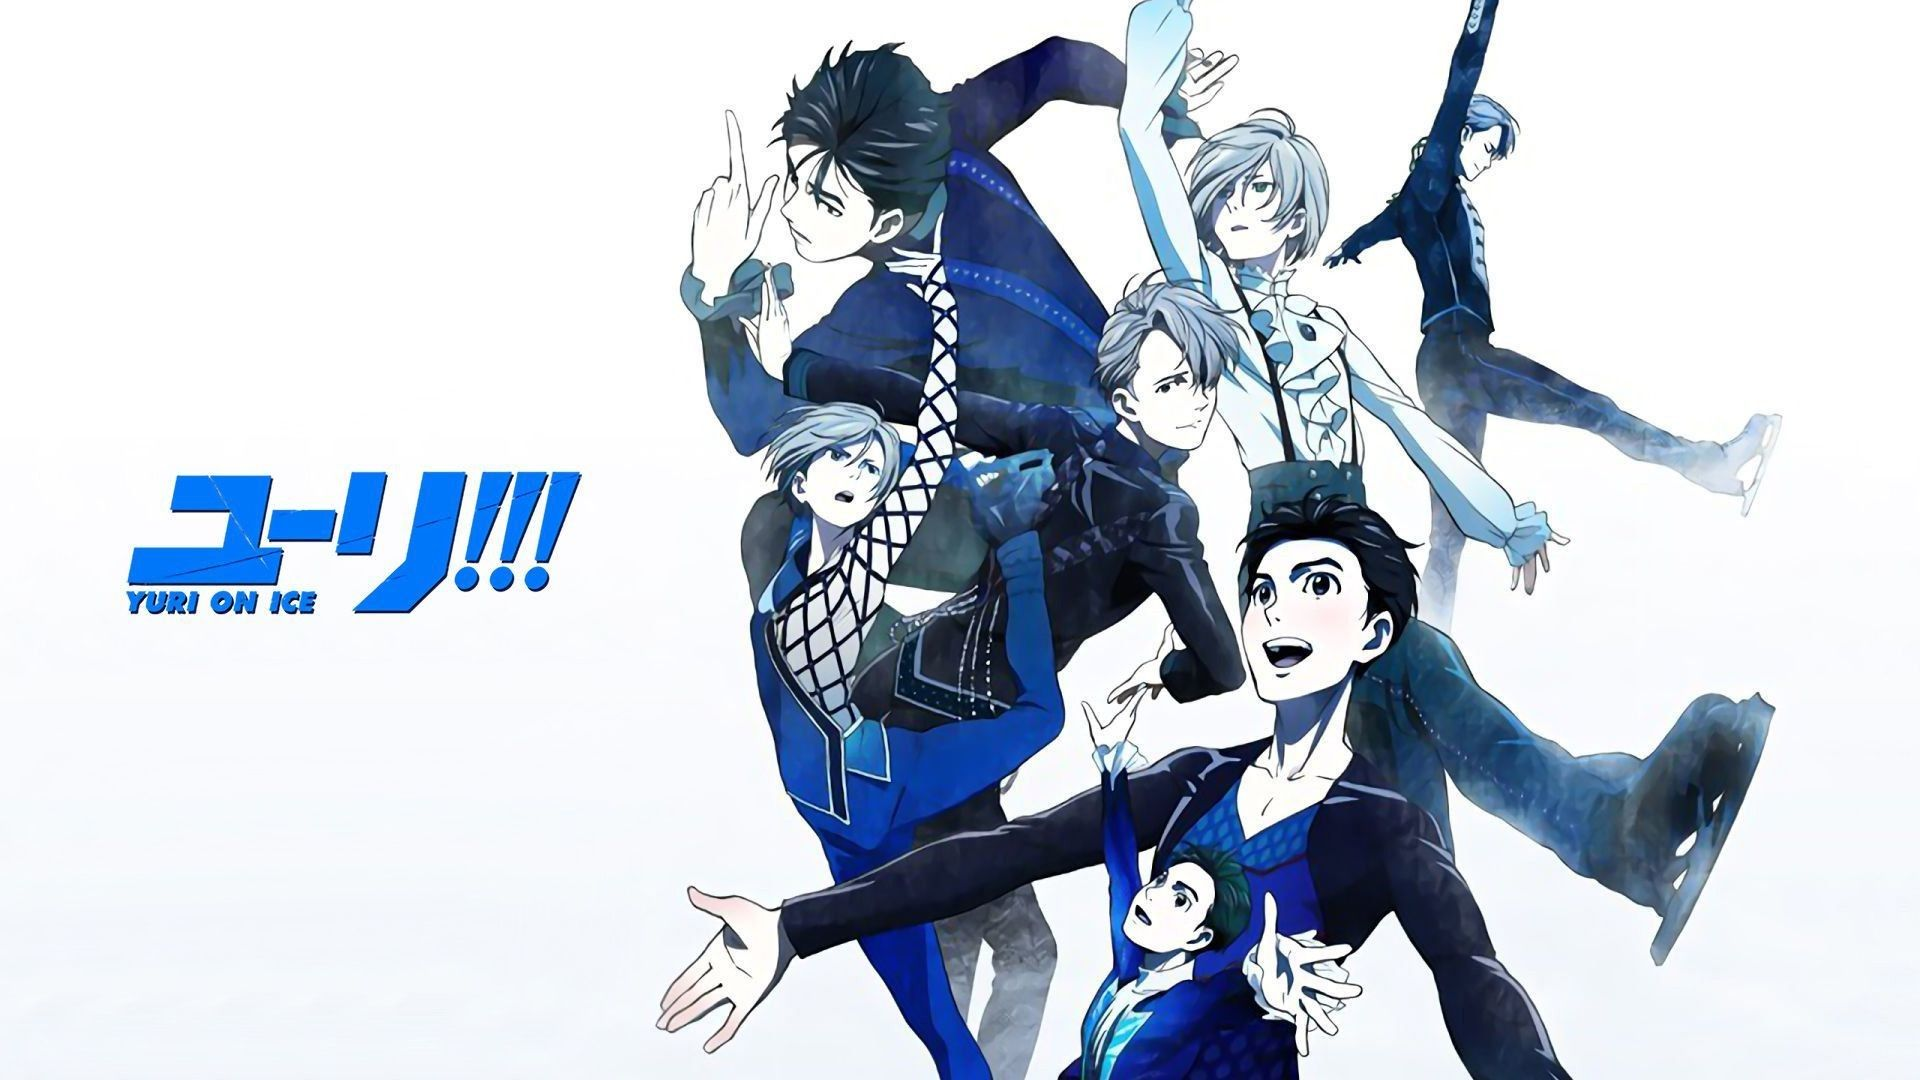 Image Result For Yuri On Ice Anime Cool Wallpaper Yuri On Ice